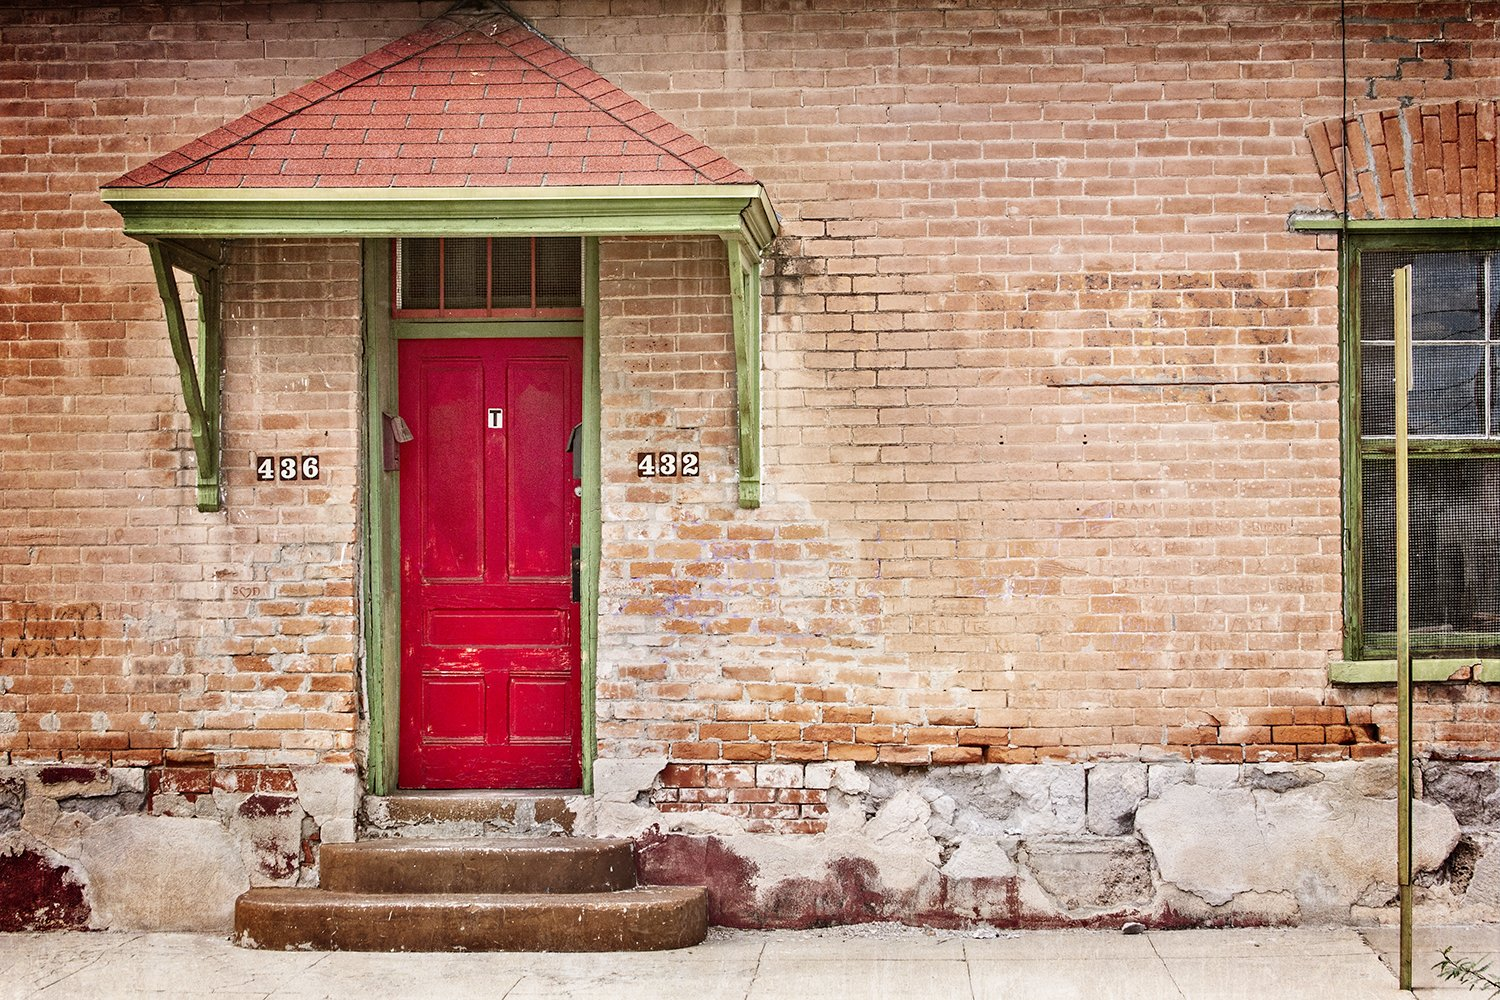 doors, alley, alley way, architecture, welcome, entry way, door, red